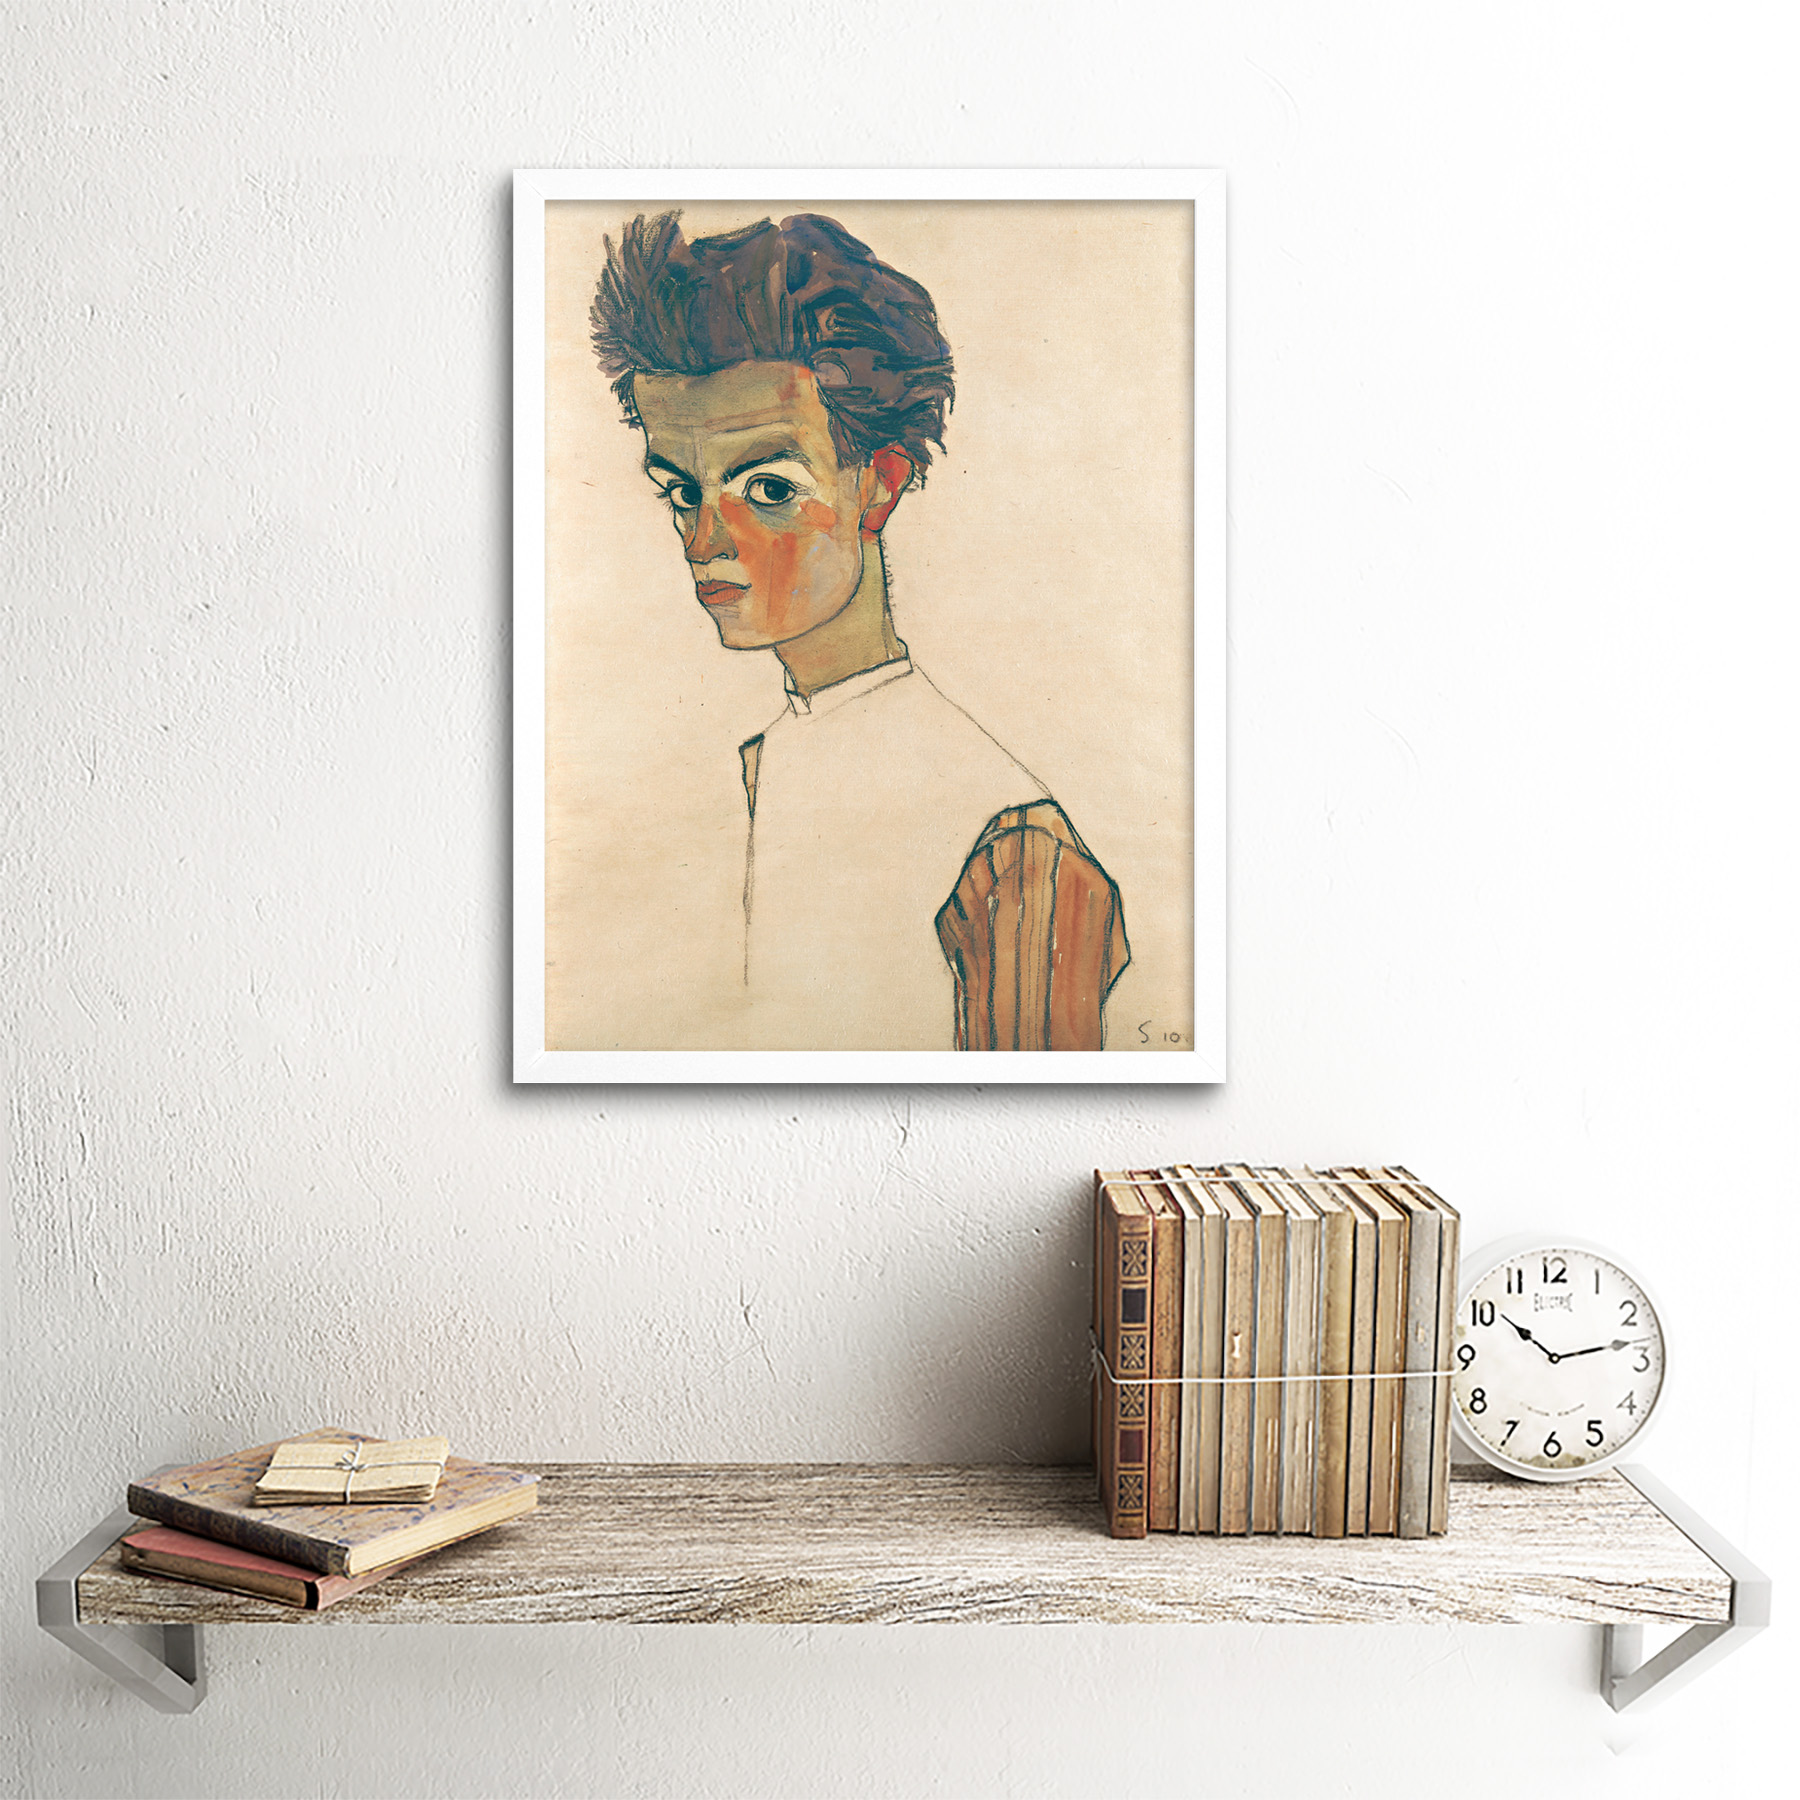 thumbnail 18 - Egon-Schiele-Self-Portrait-With-Striped-Shirt-Art-Print-Framed-12x16